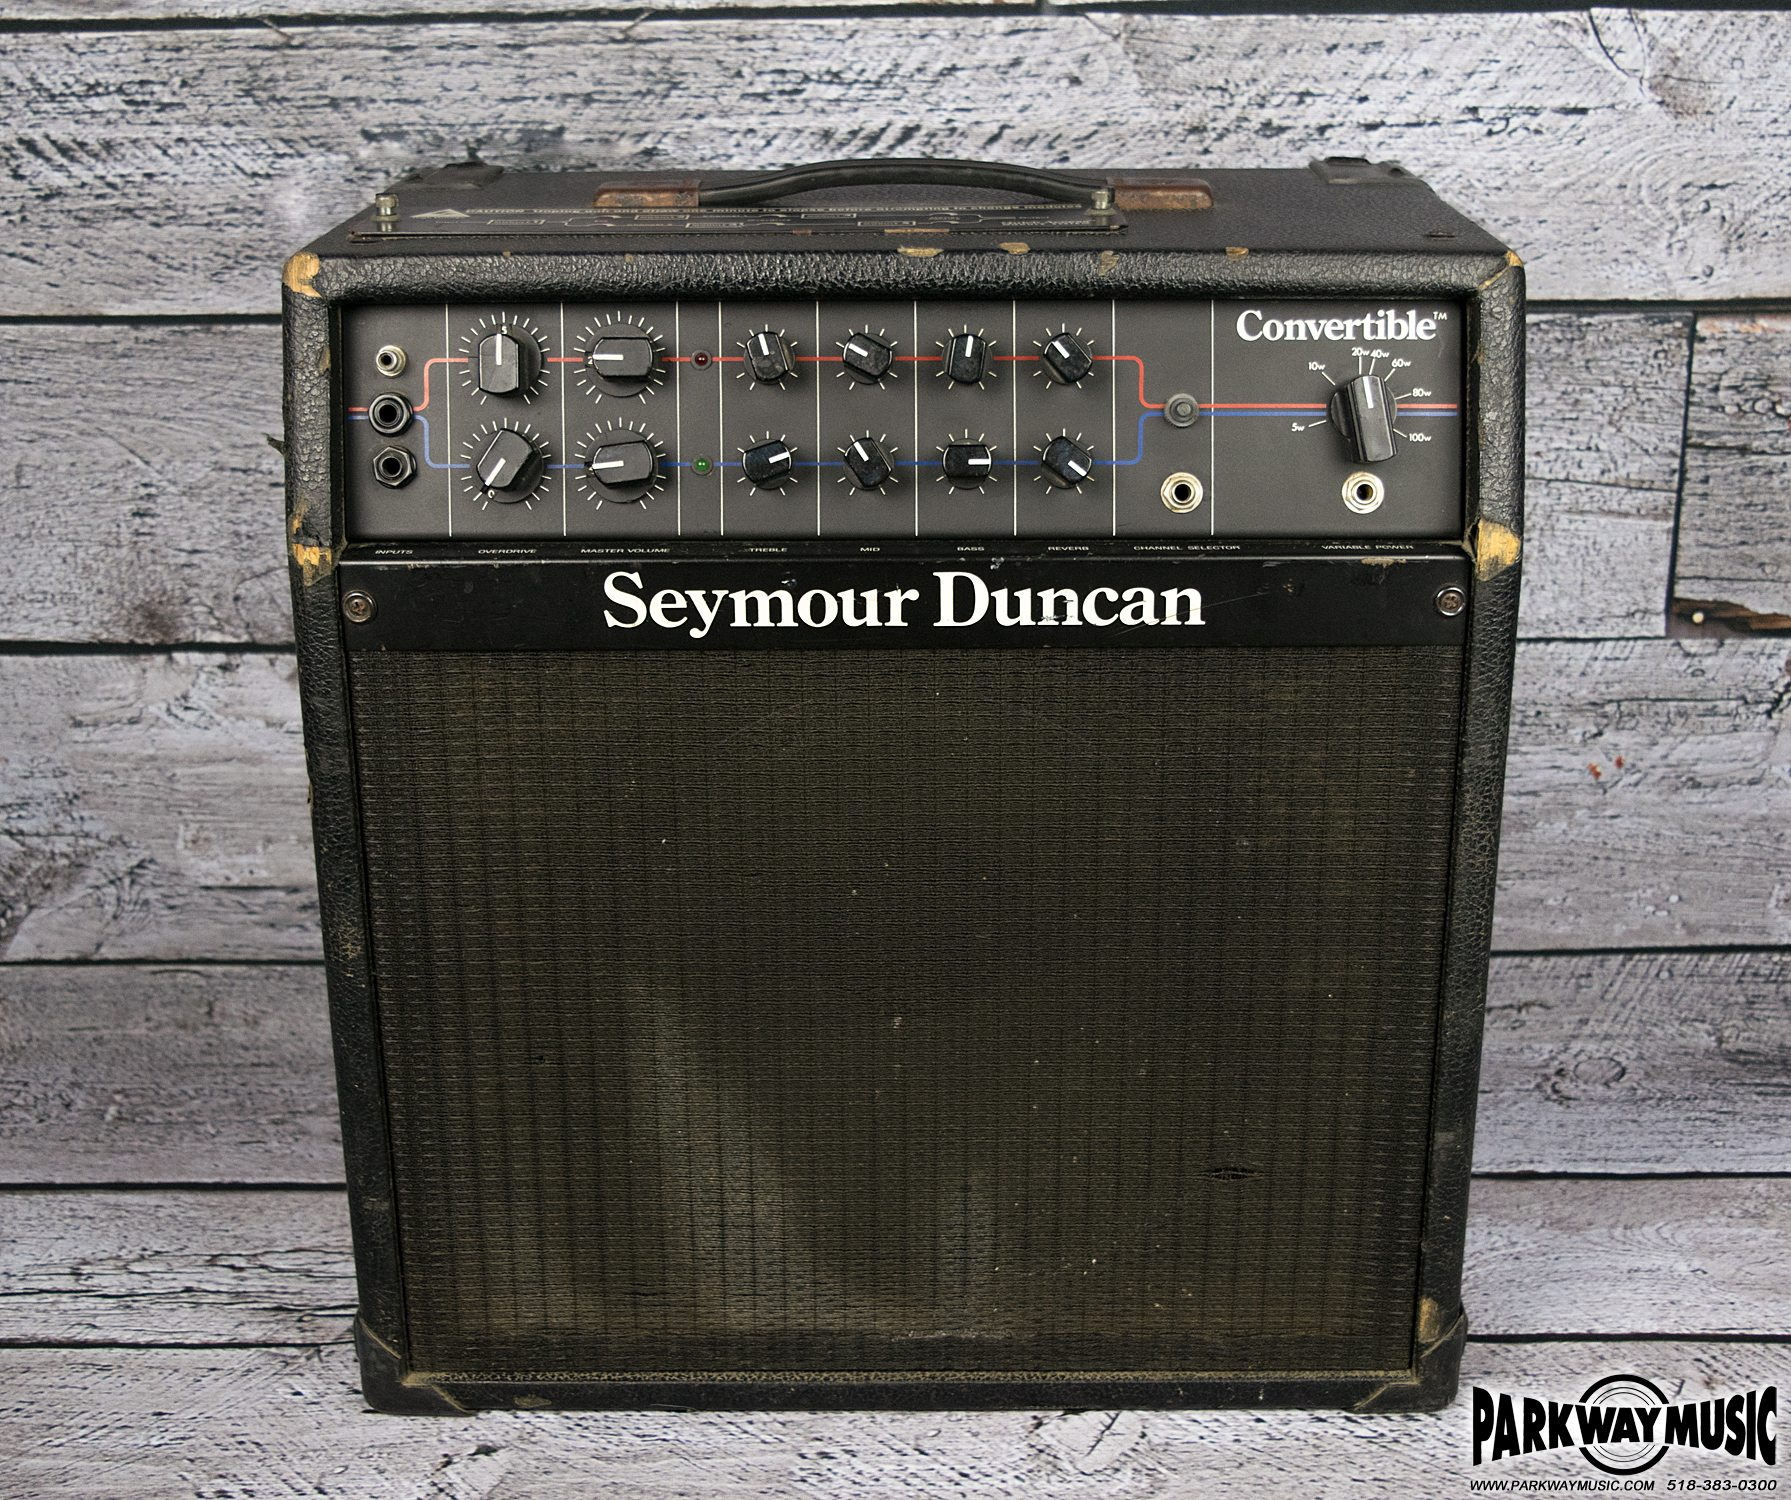 Seymour Duncan Convertible Tube Combo (USED)